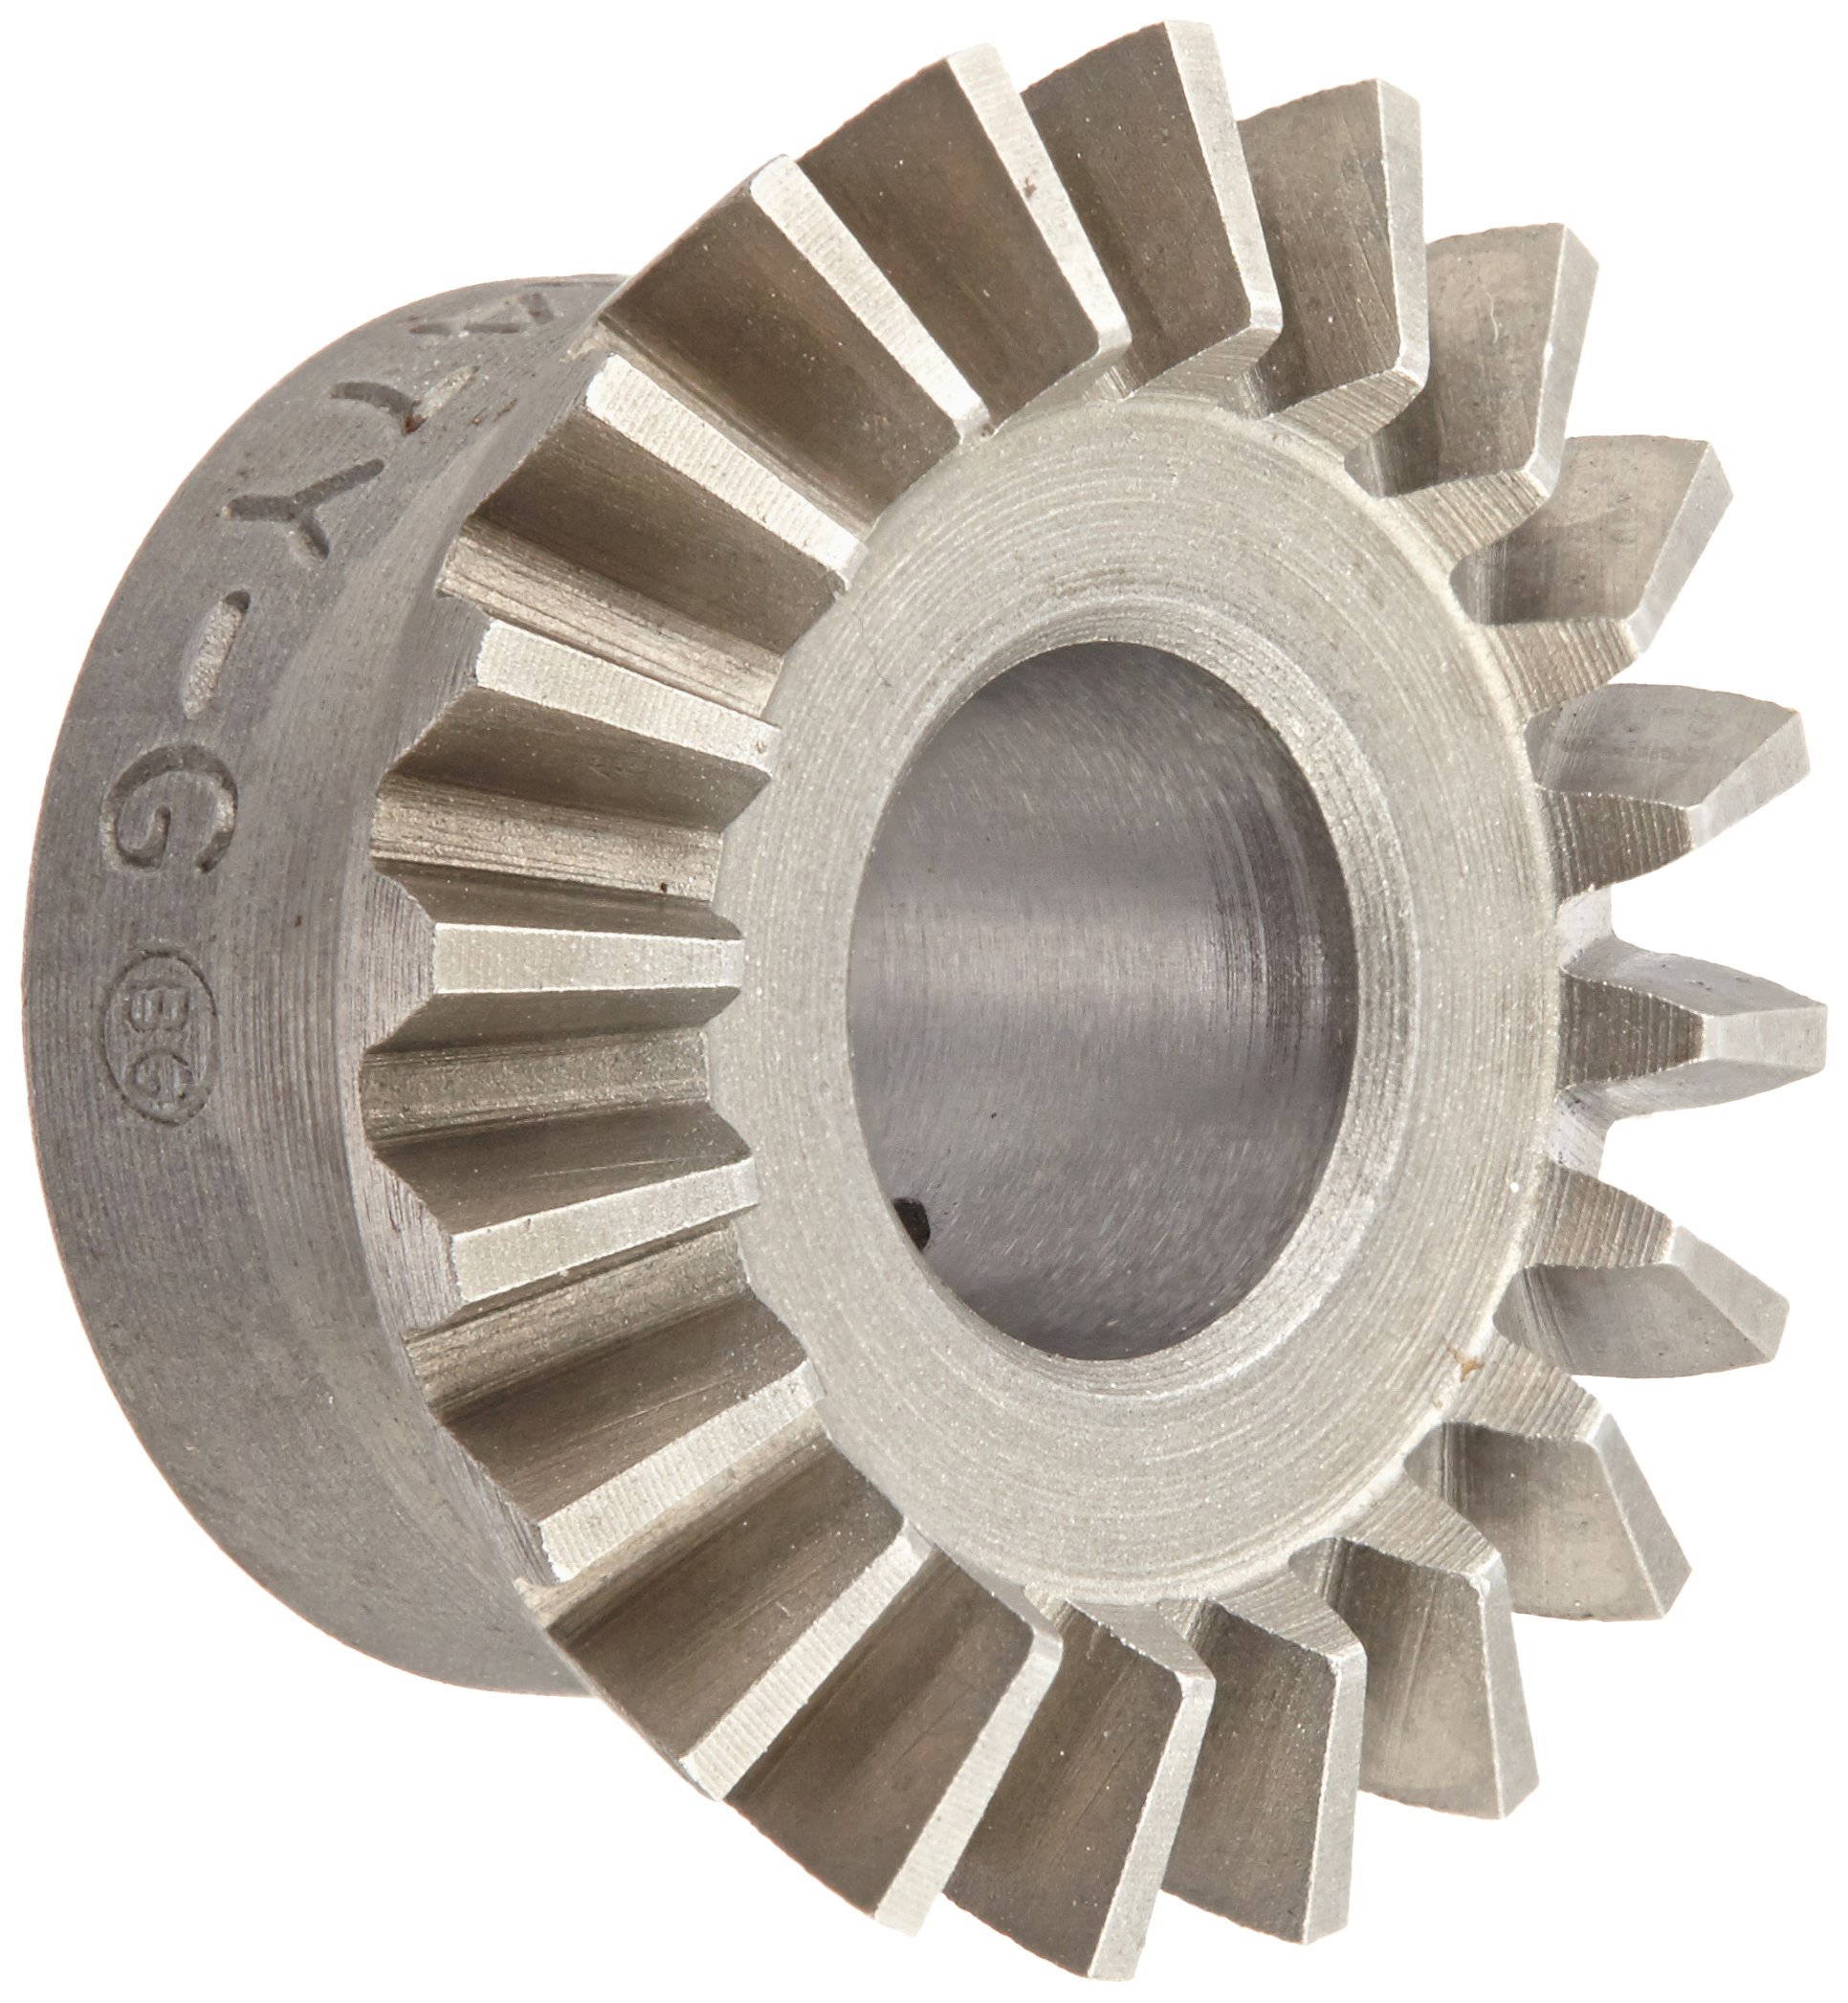 "Boston Gear HL147Y-G Bevel Gear, 2:1 Ratio, 0.375"" Bore, 20 Pitch, 20 Teeth, 20 Degree Pressure Angle, Straight Bevel, Steel with Case-Hardened Teeth"